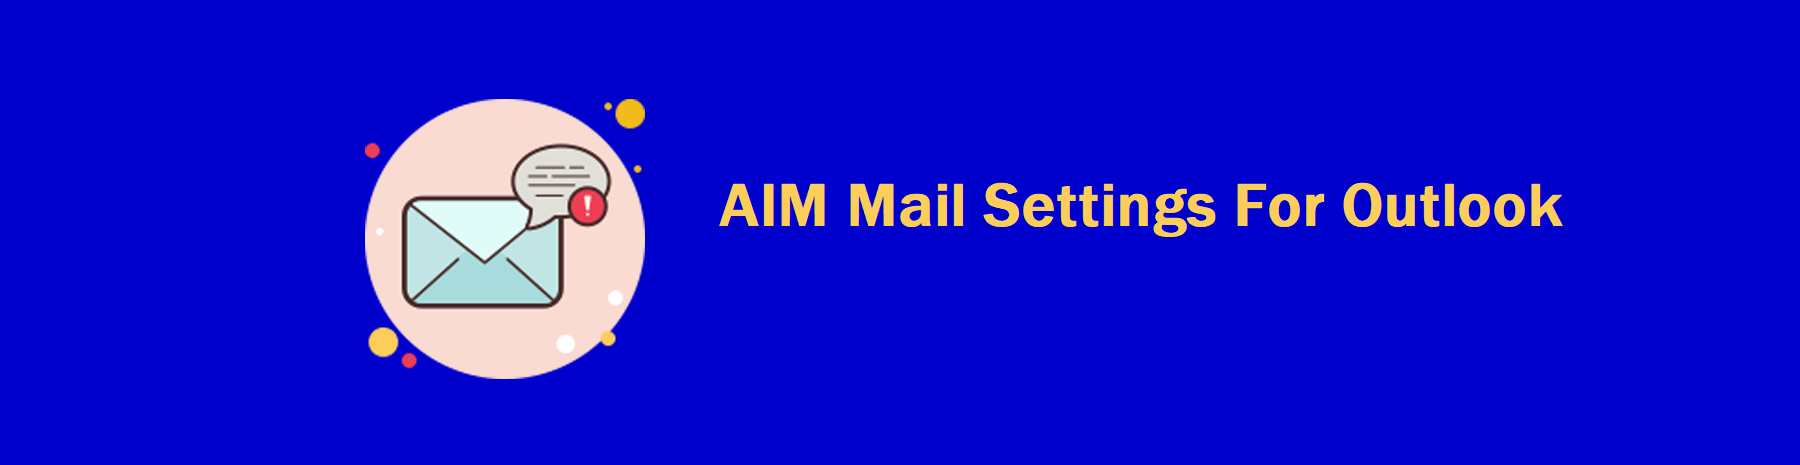 AIM Mail Settings For Outlook,